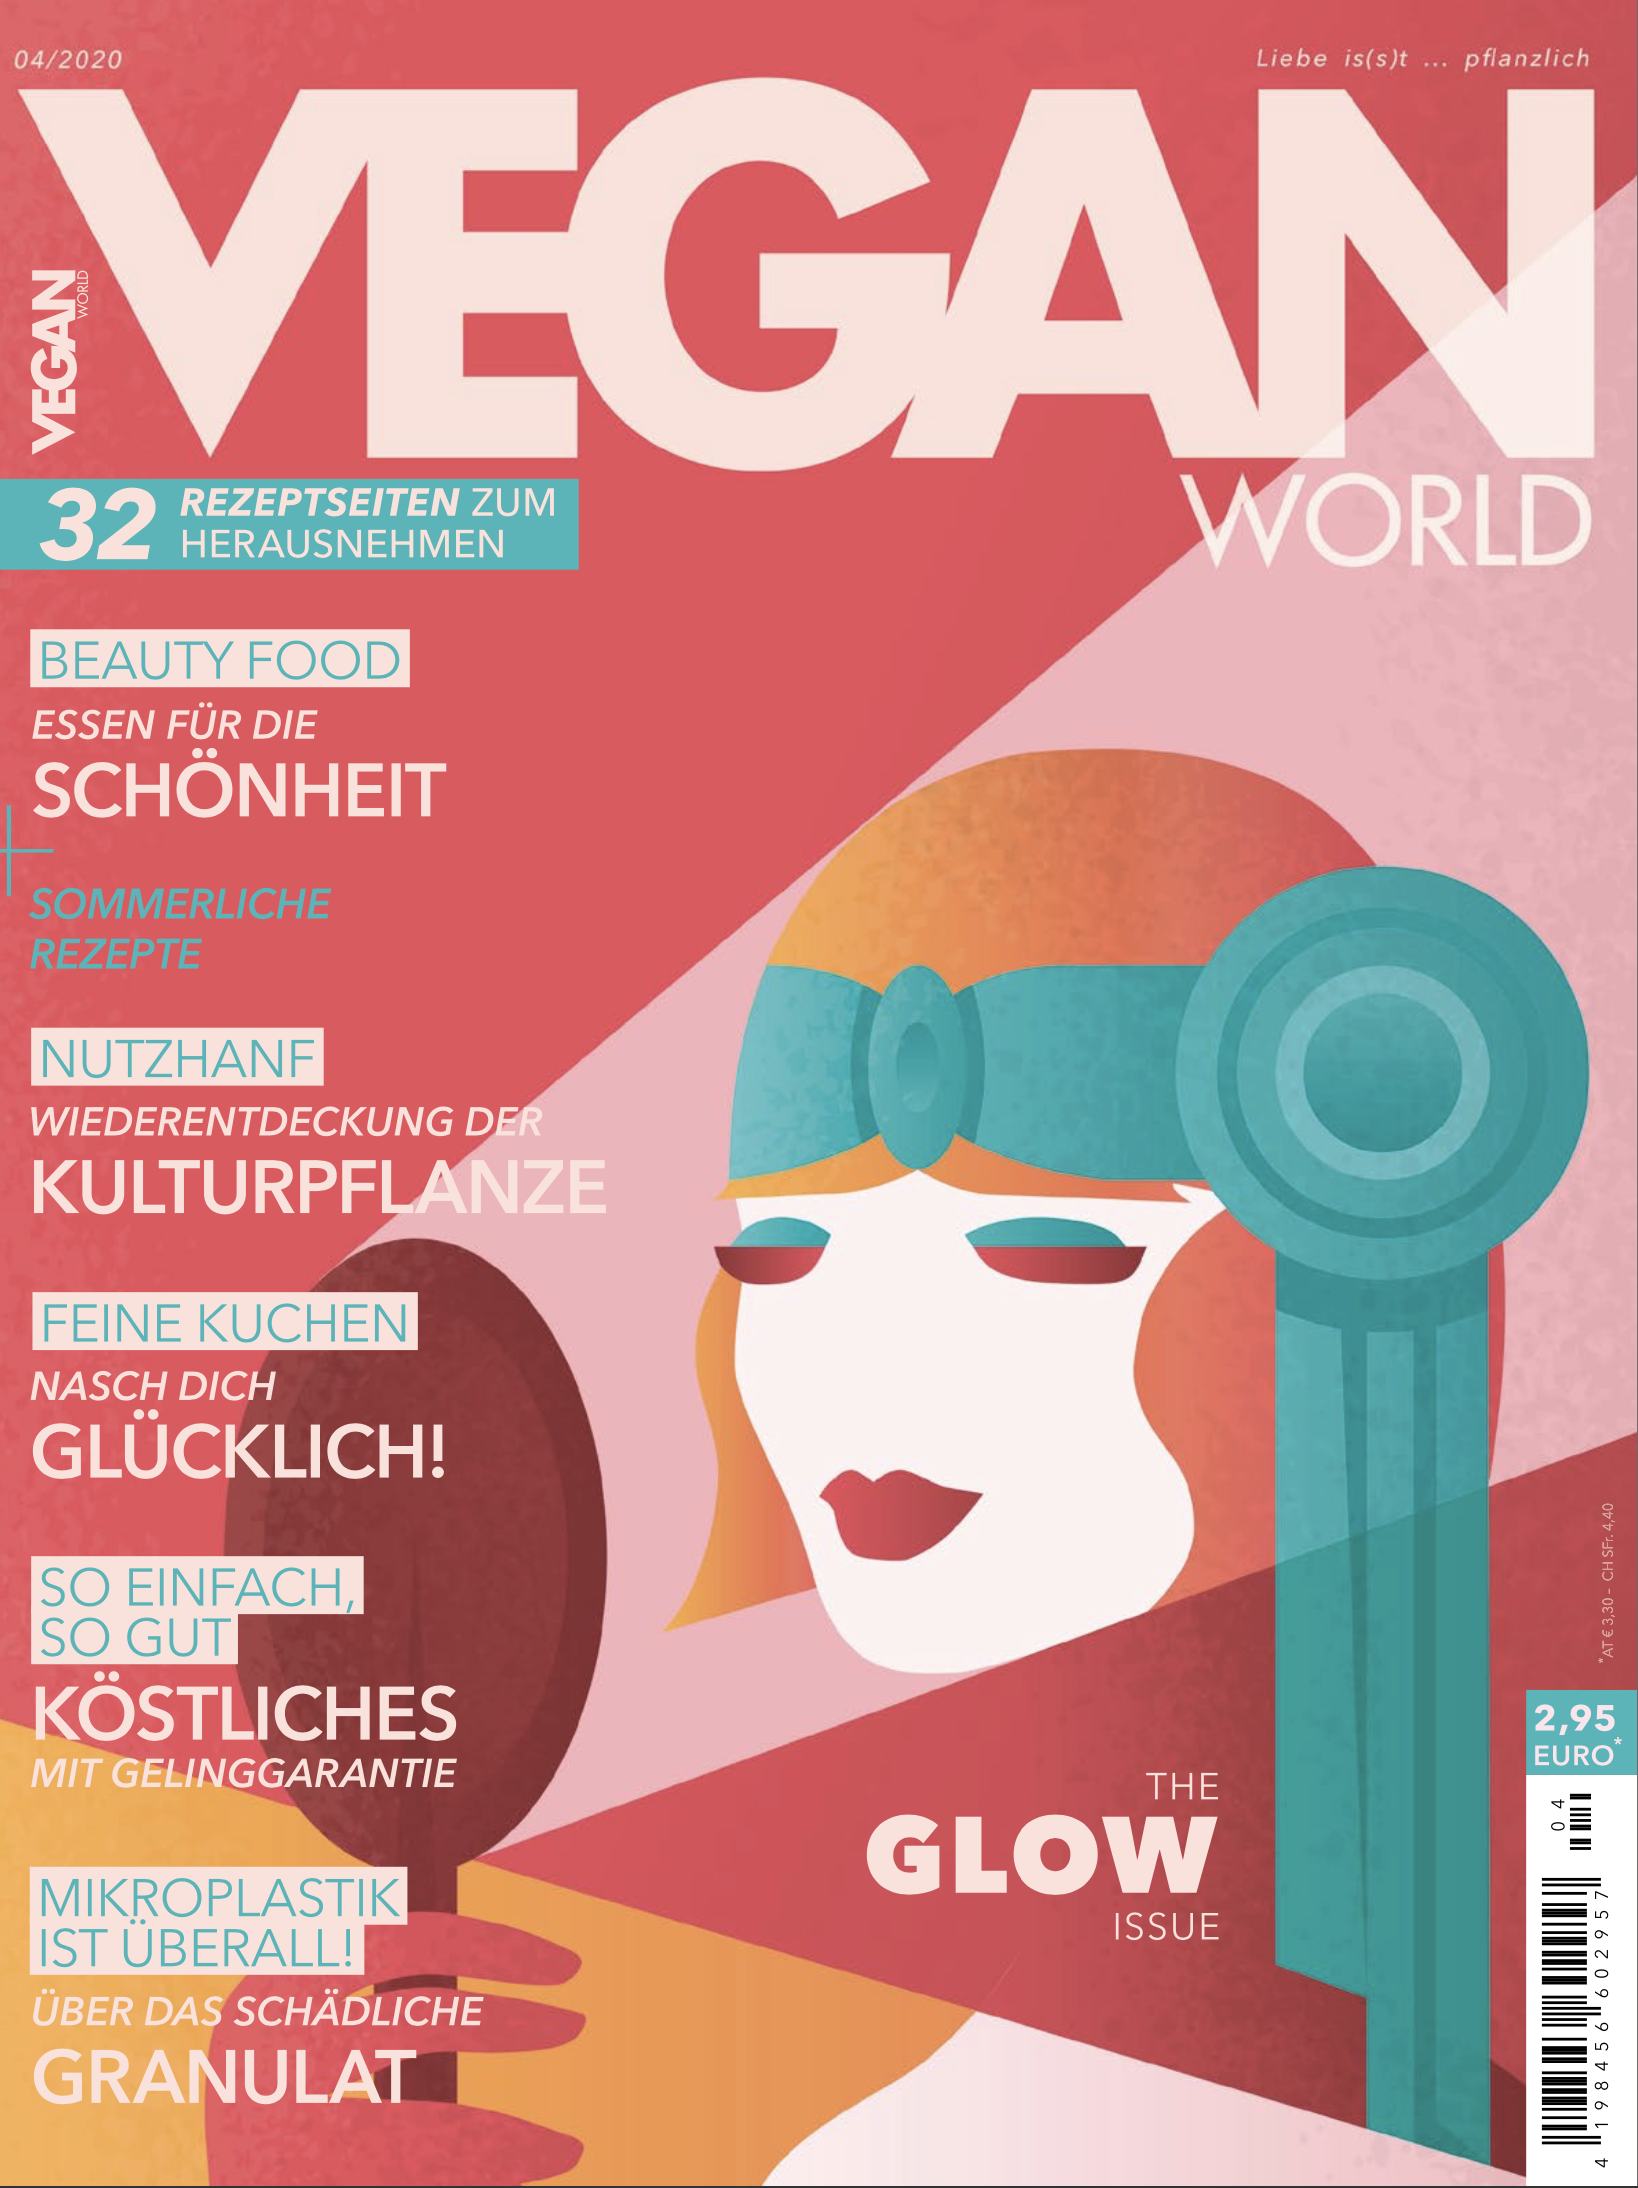 Vegan World 04 2020